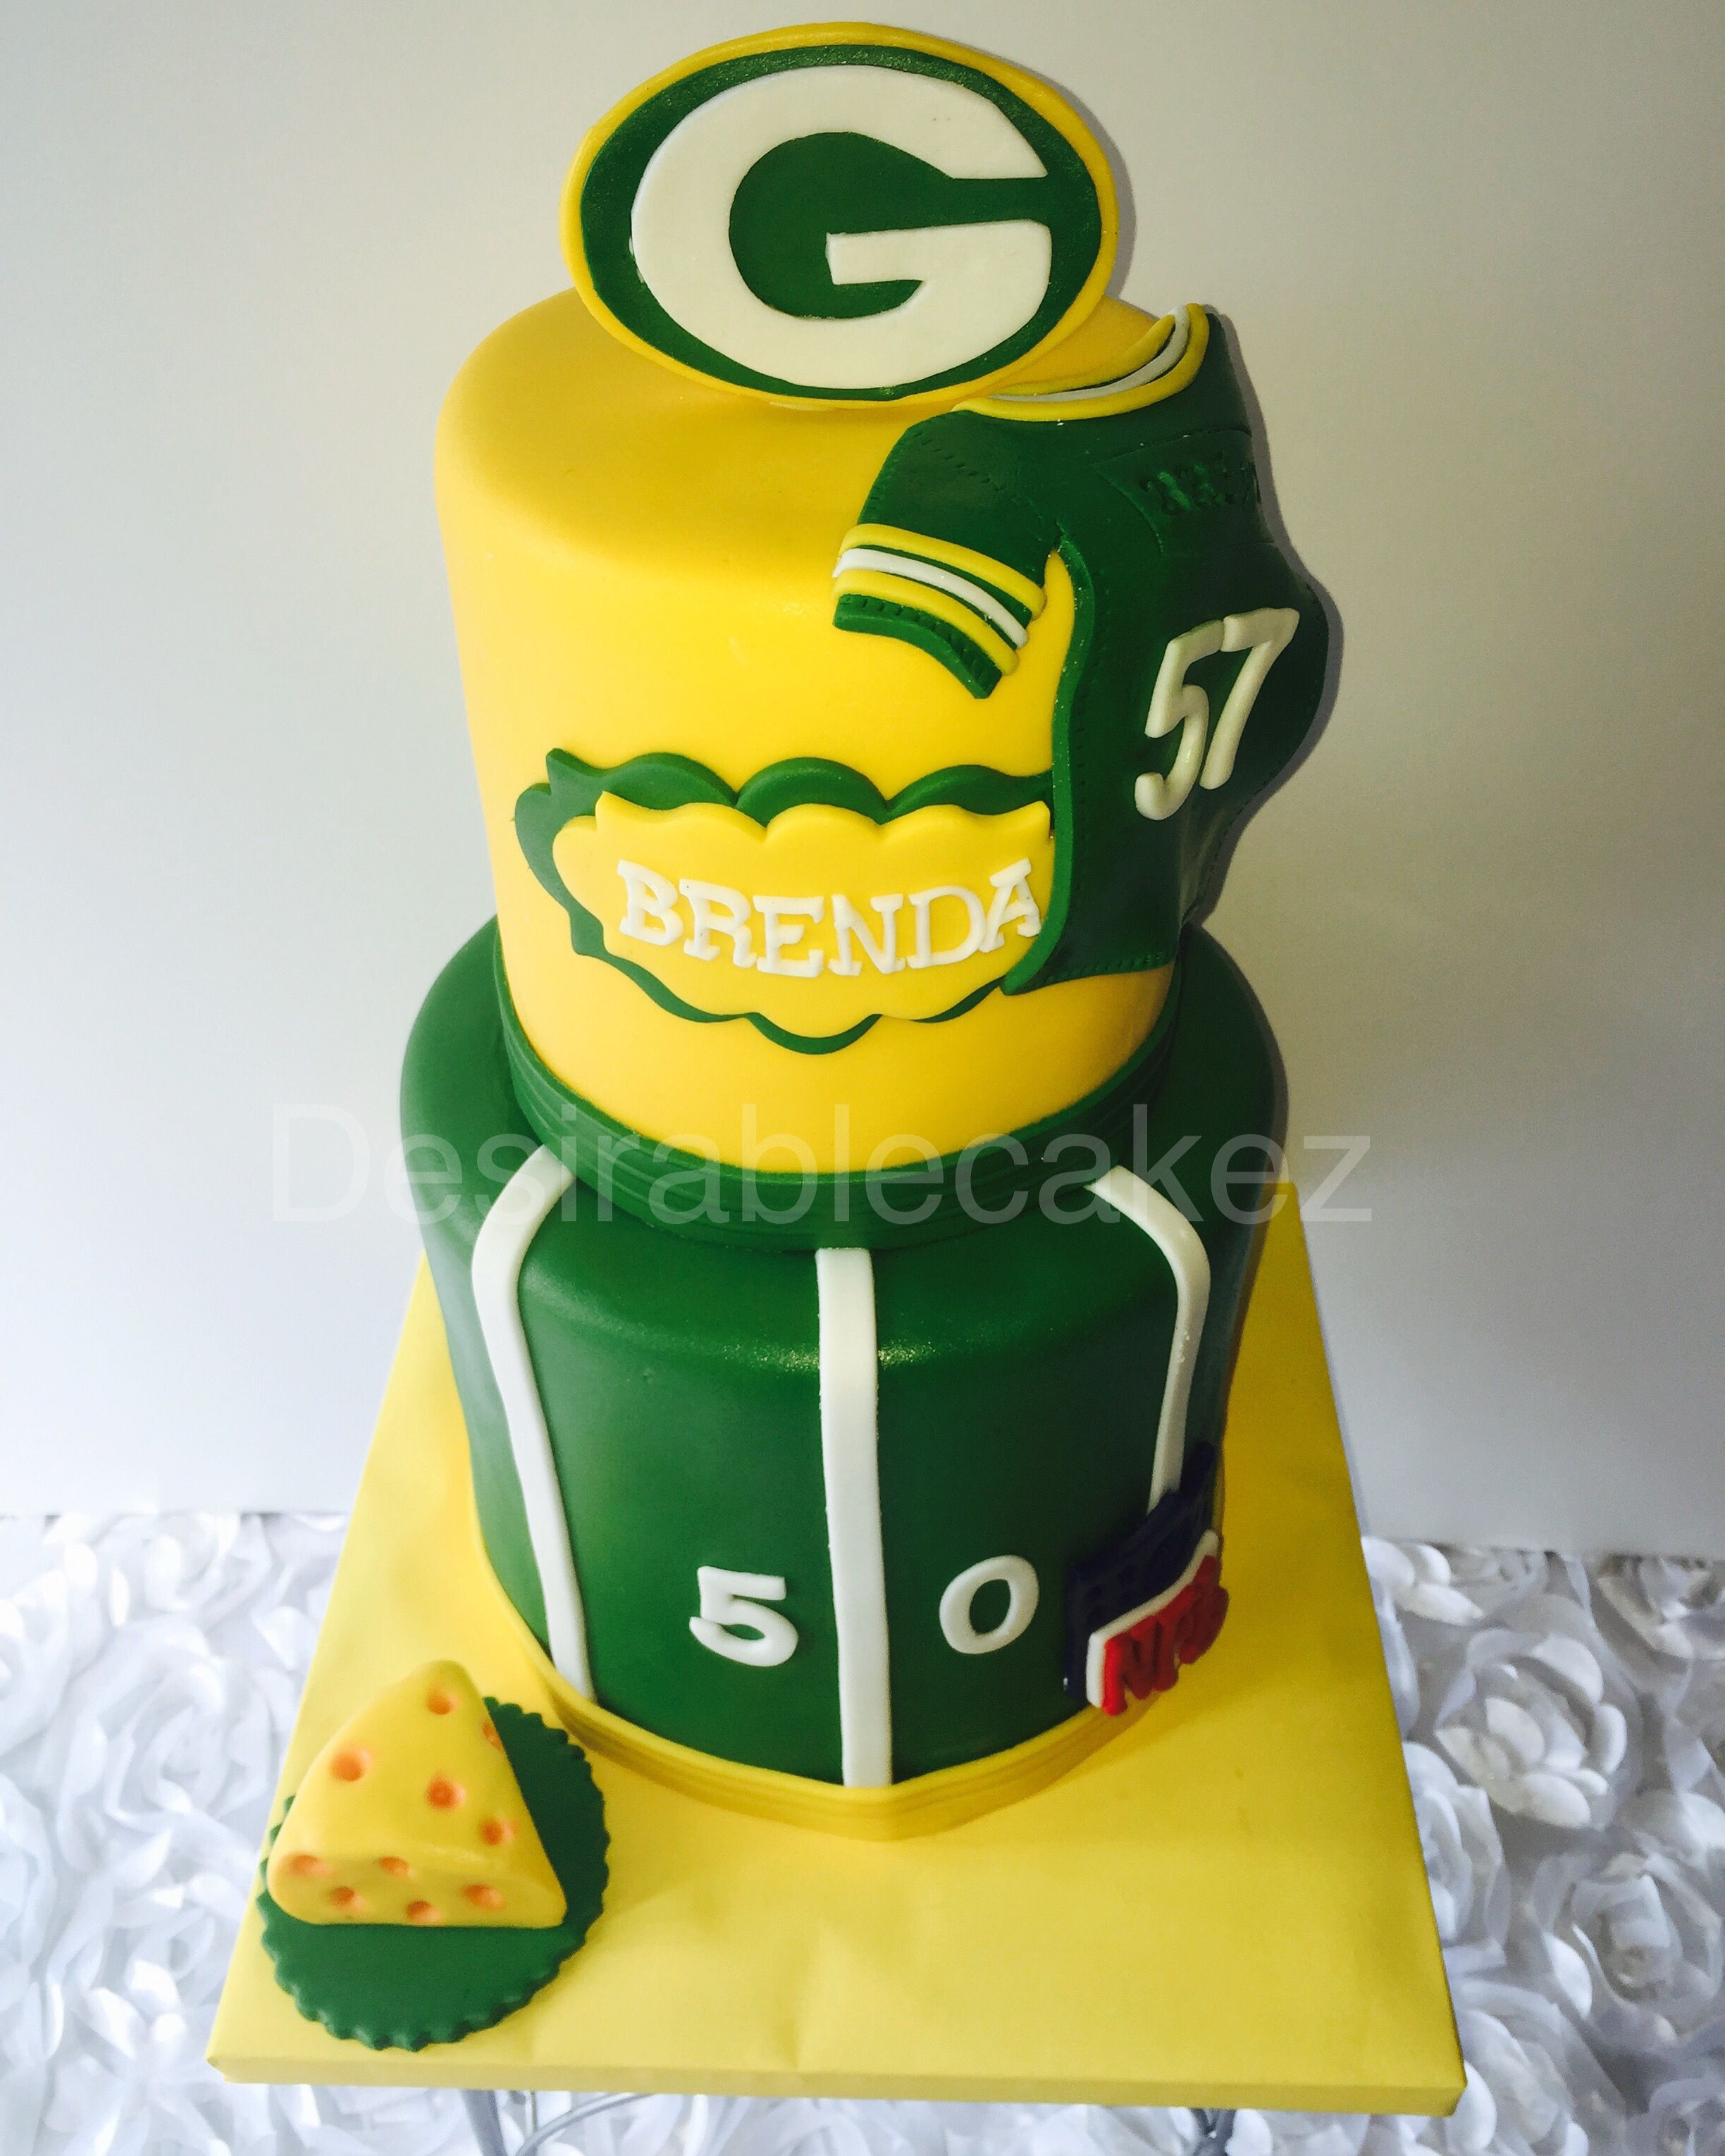 Green Bay Packers Cake Pastel Pinterest Packers Cake Cake And